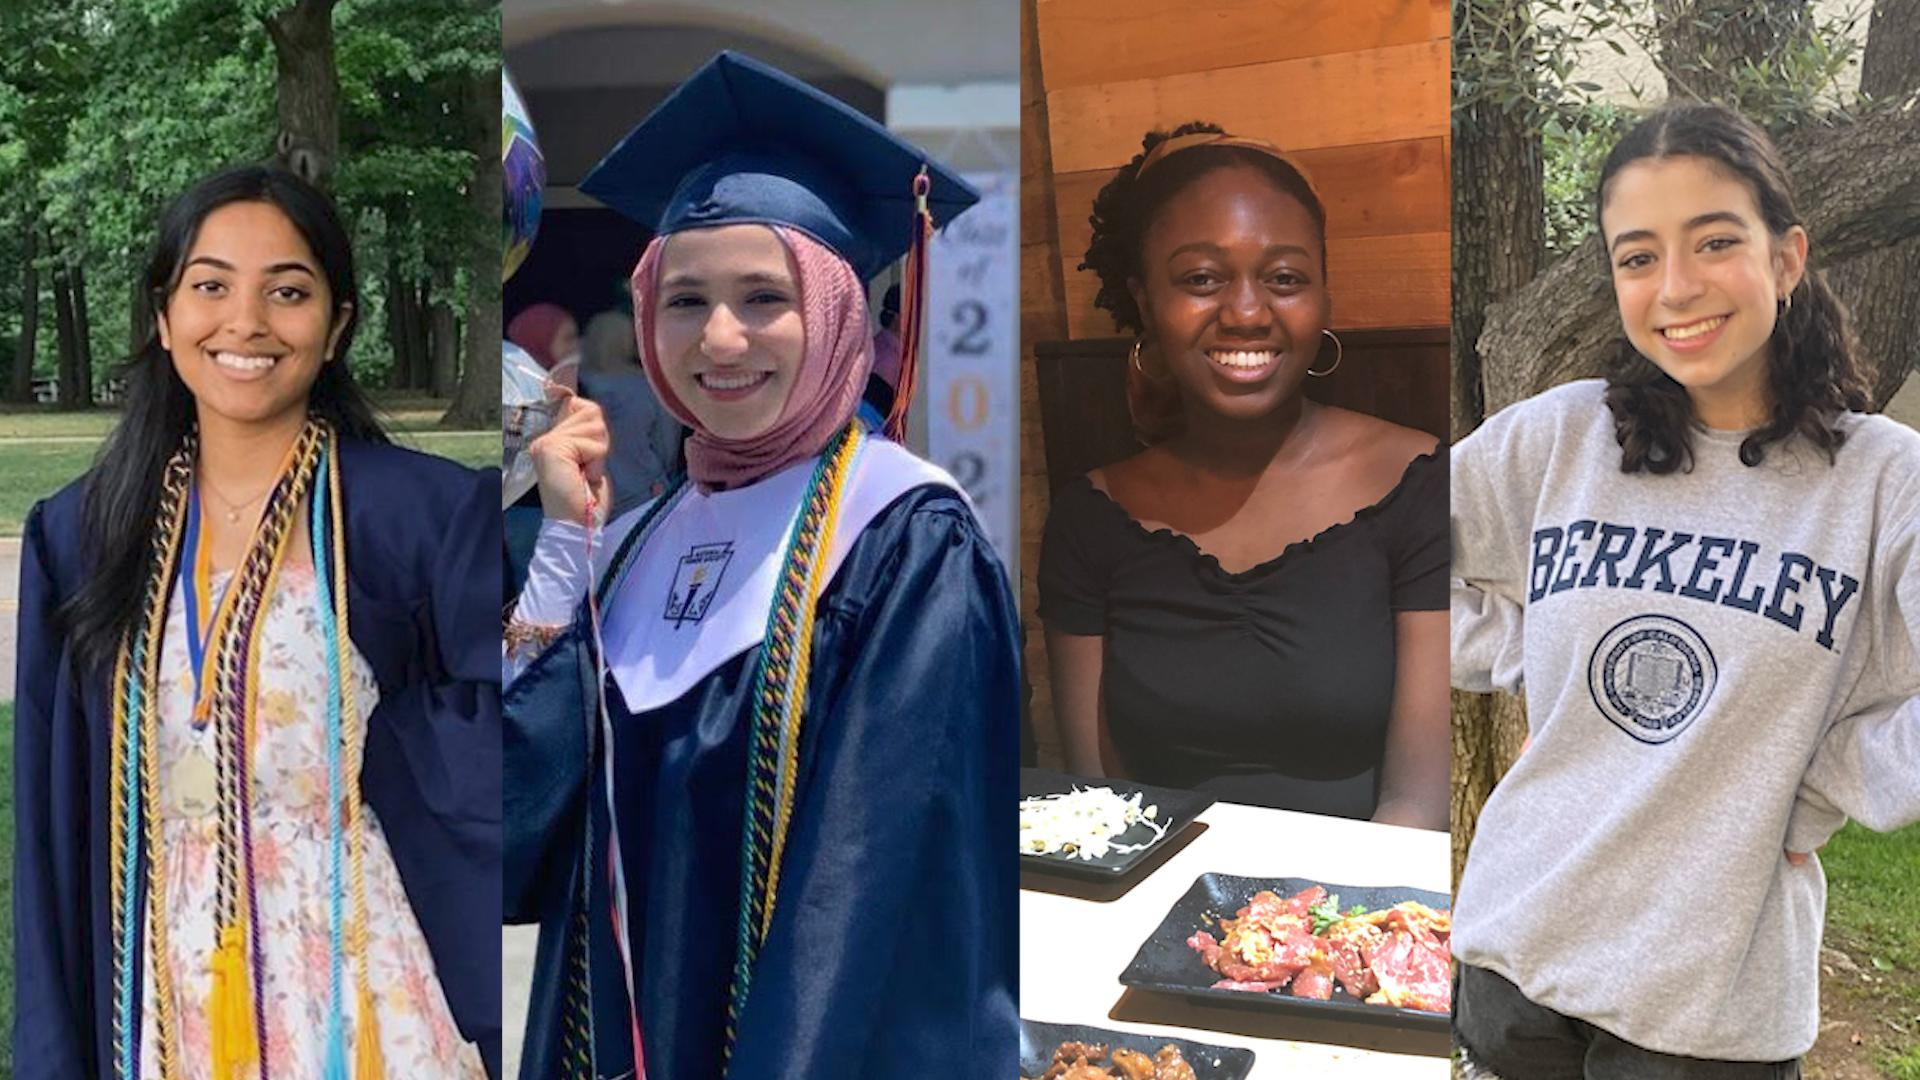 College freshmen and Built by Girls community members, from left: Shehneel Ashraf, Ethar Hussein, Olamide Babayeju and Olivia Kris. (Photo collage by Yahoo Life)